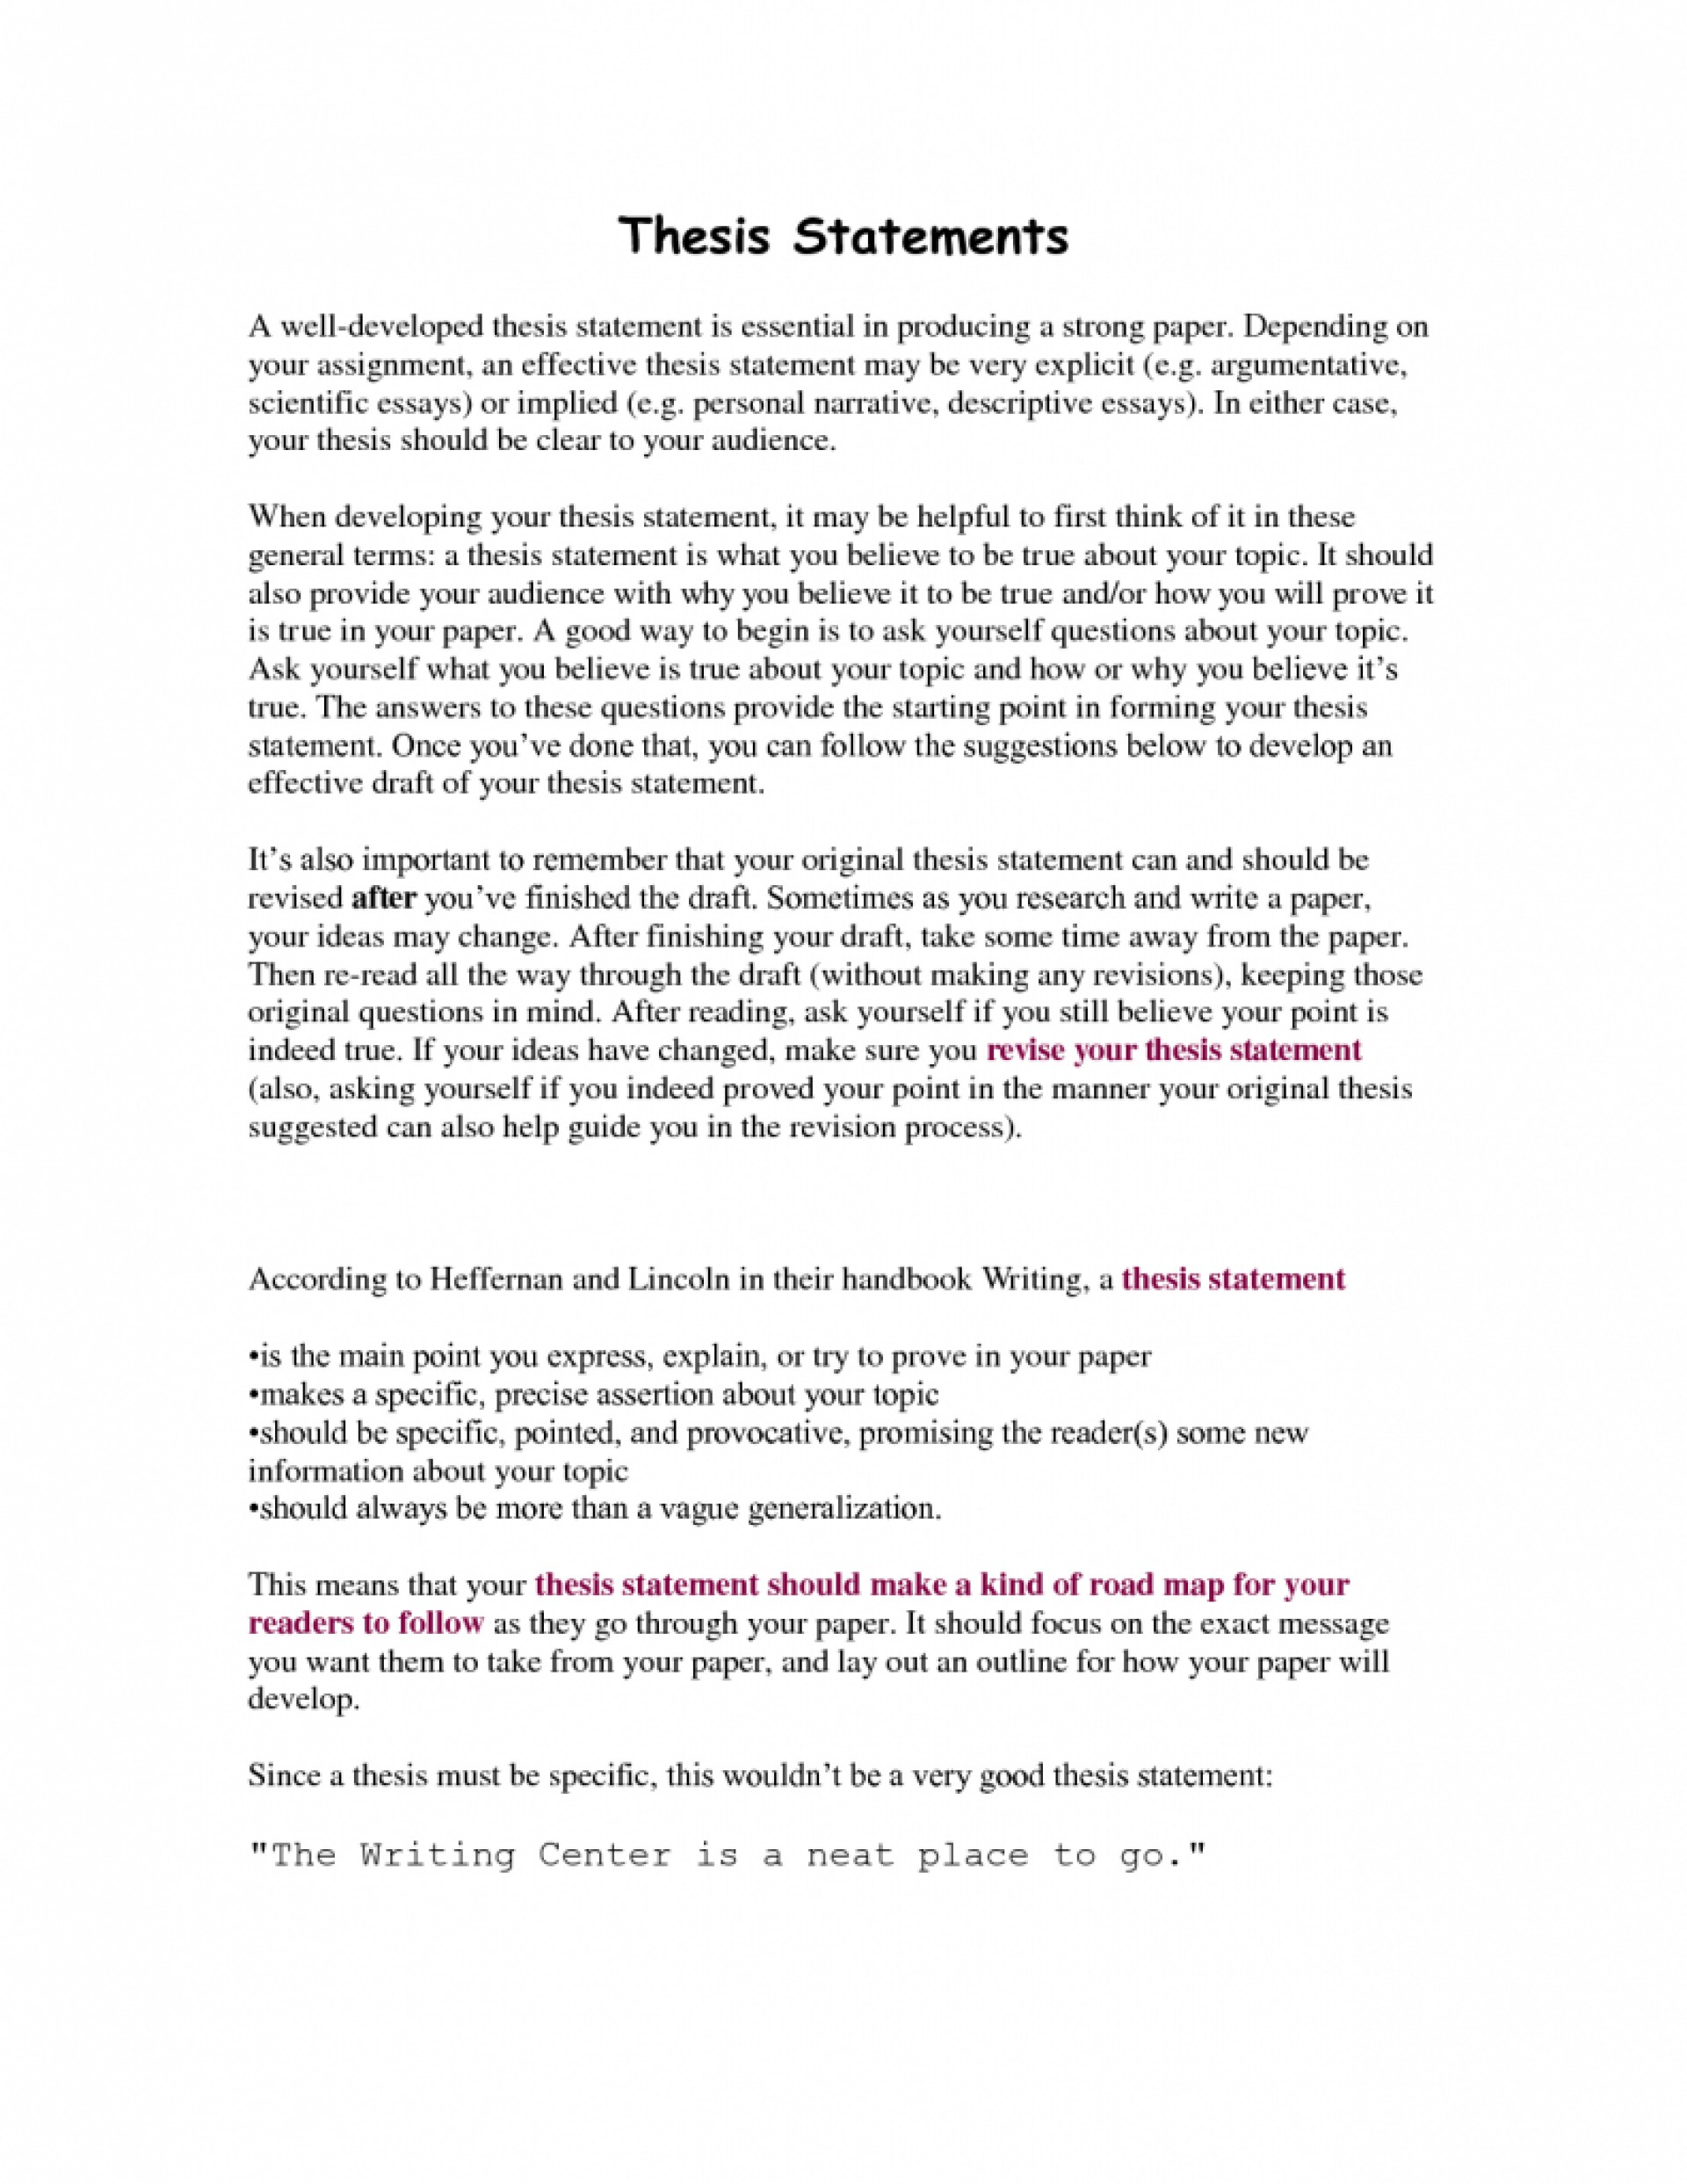 002 Writing Effective Thesis Statements For Essays On Friendship Statement Argumentative Essay Social Media Example An In Frightening Must I Present Both Sides Of The Issue Brainly 1920